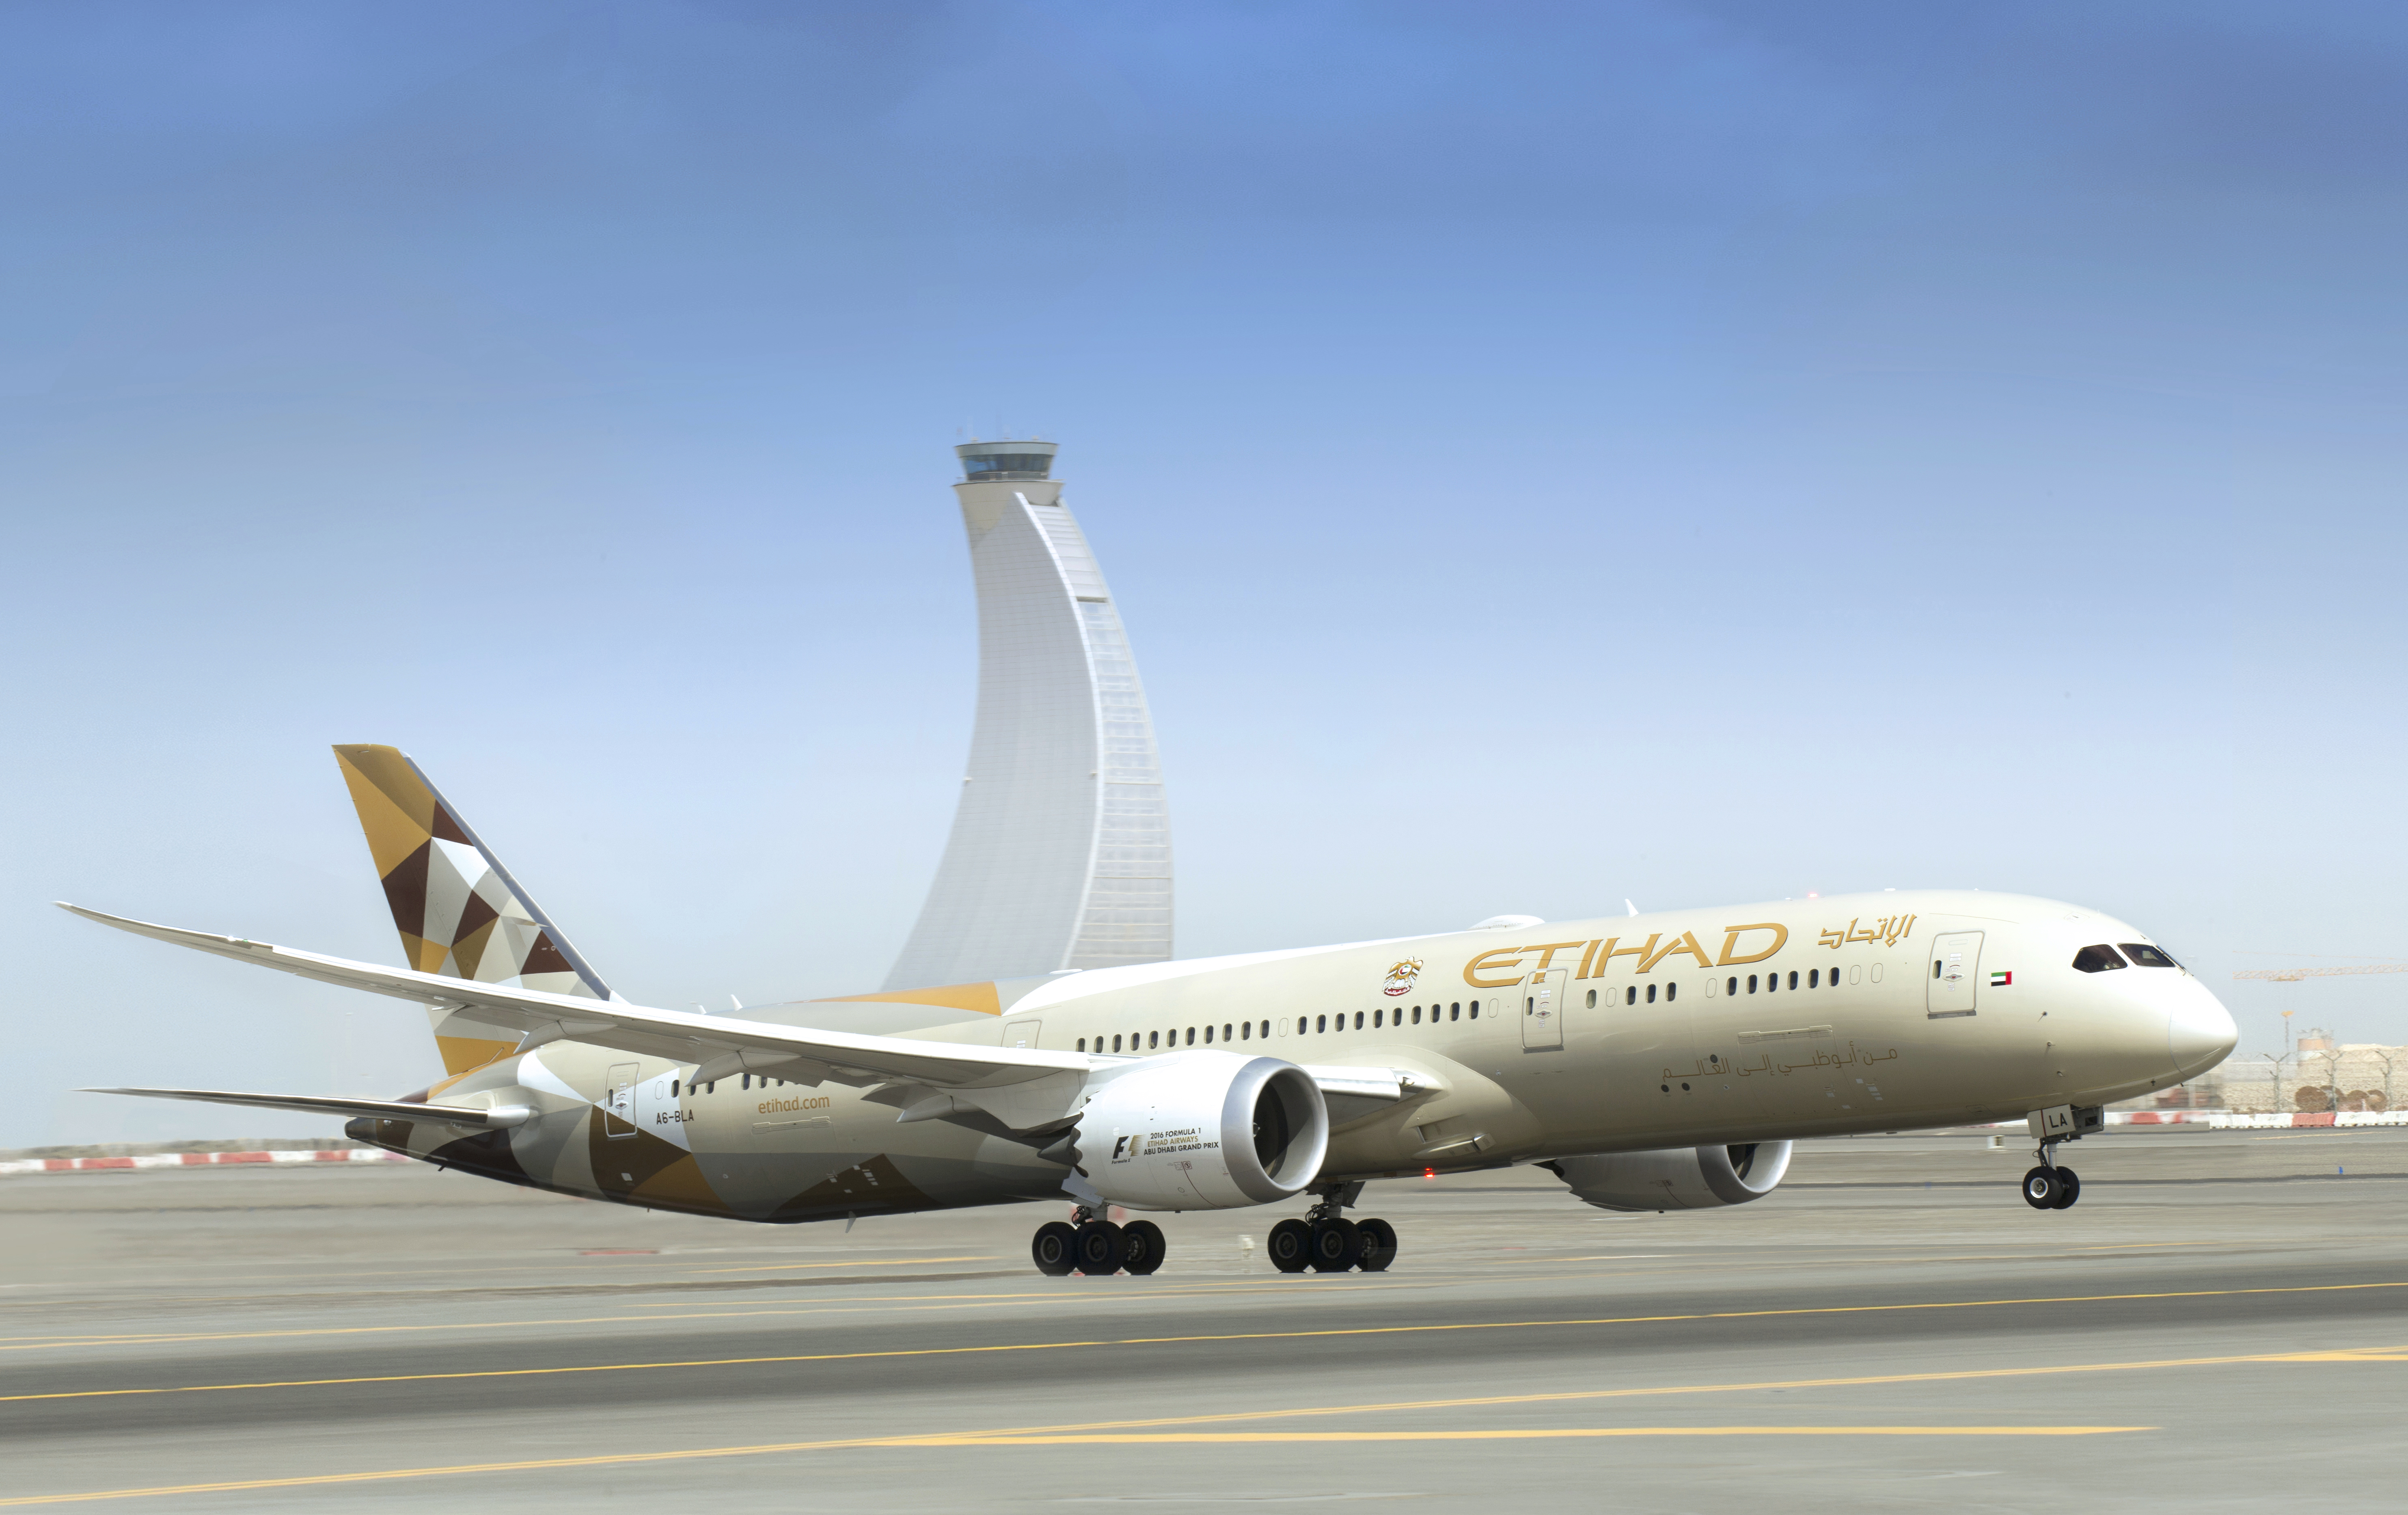 Etihad Airways: 787 Dreamliner Destination